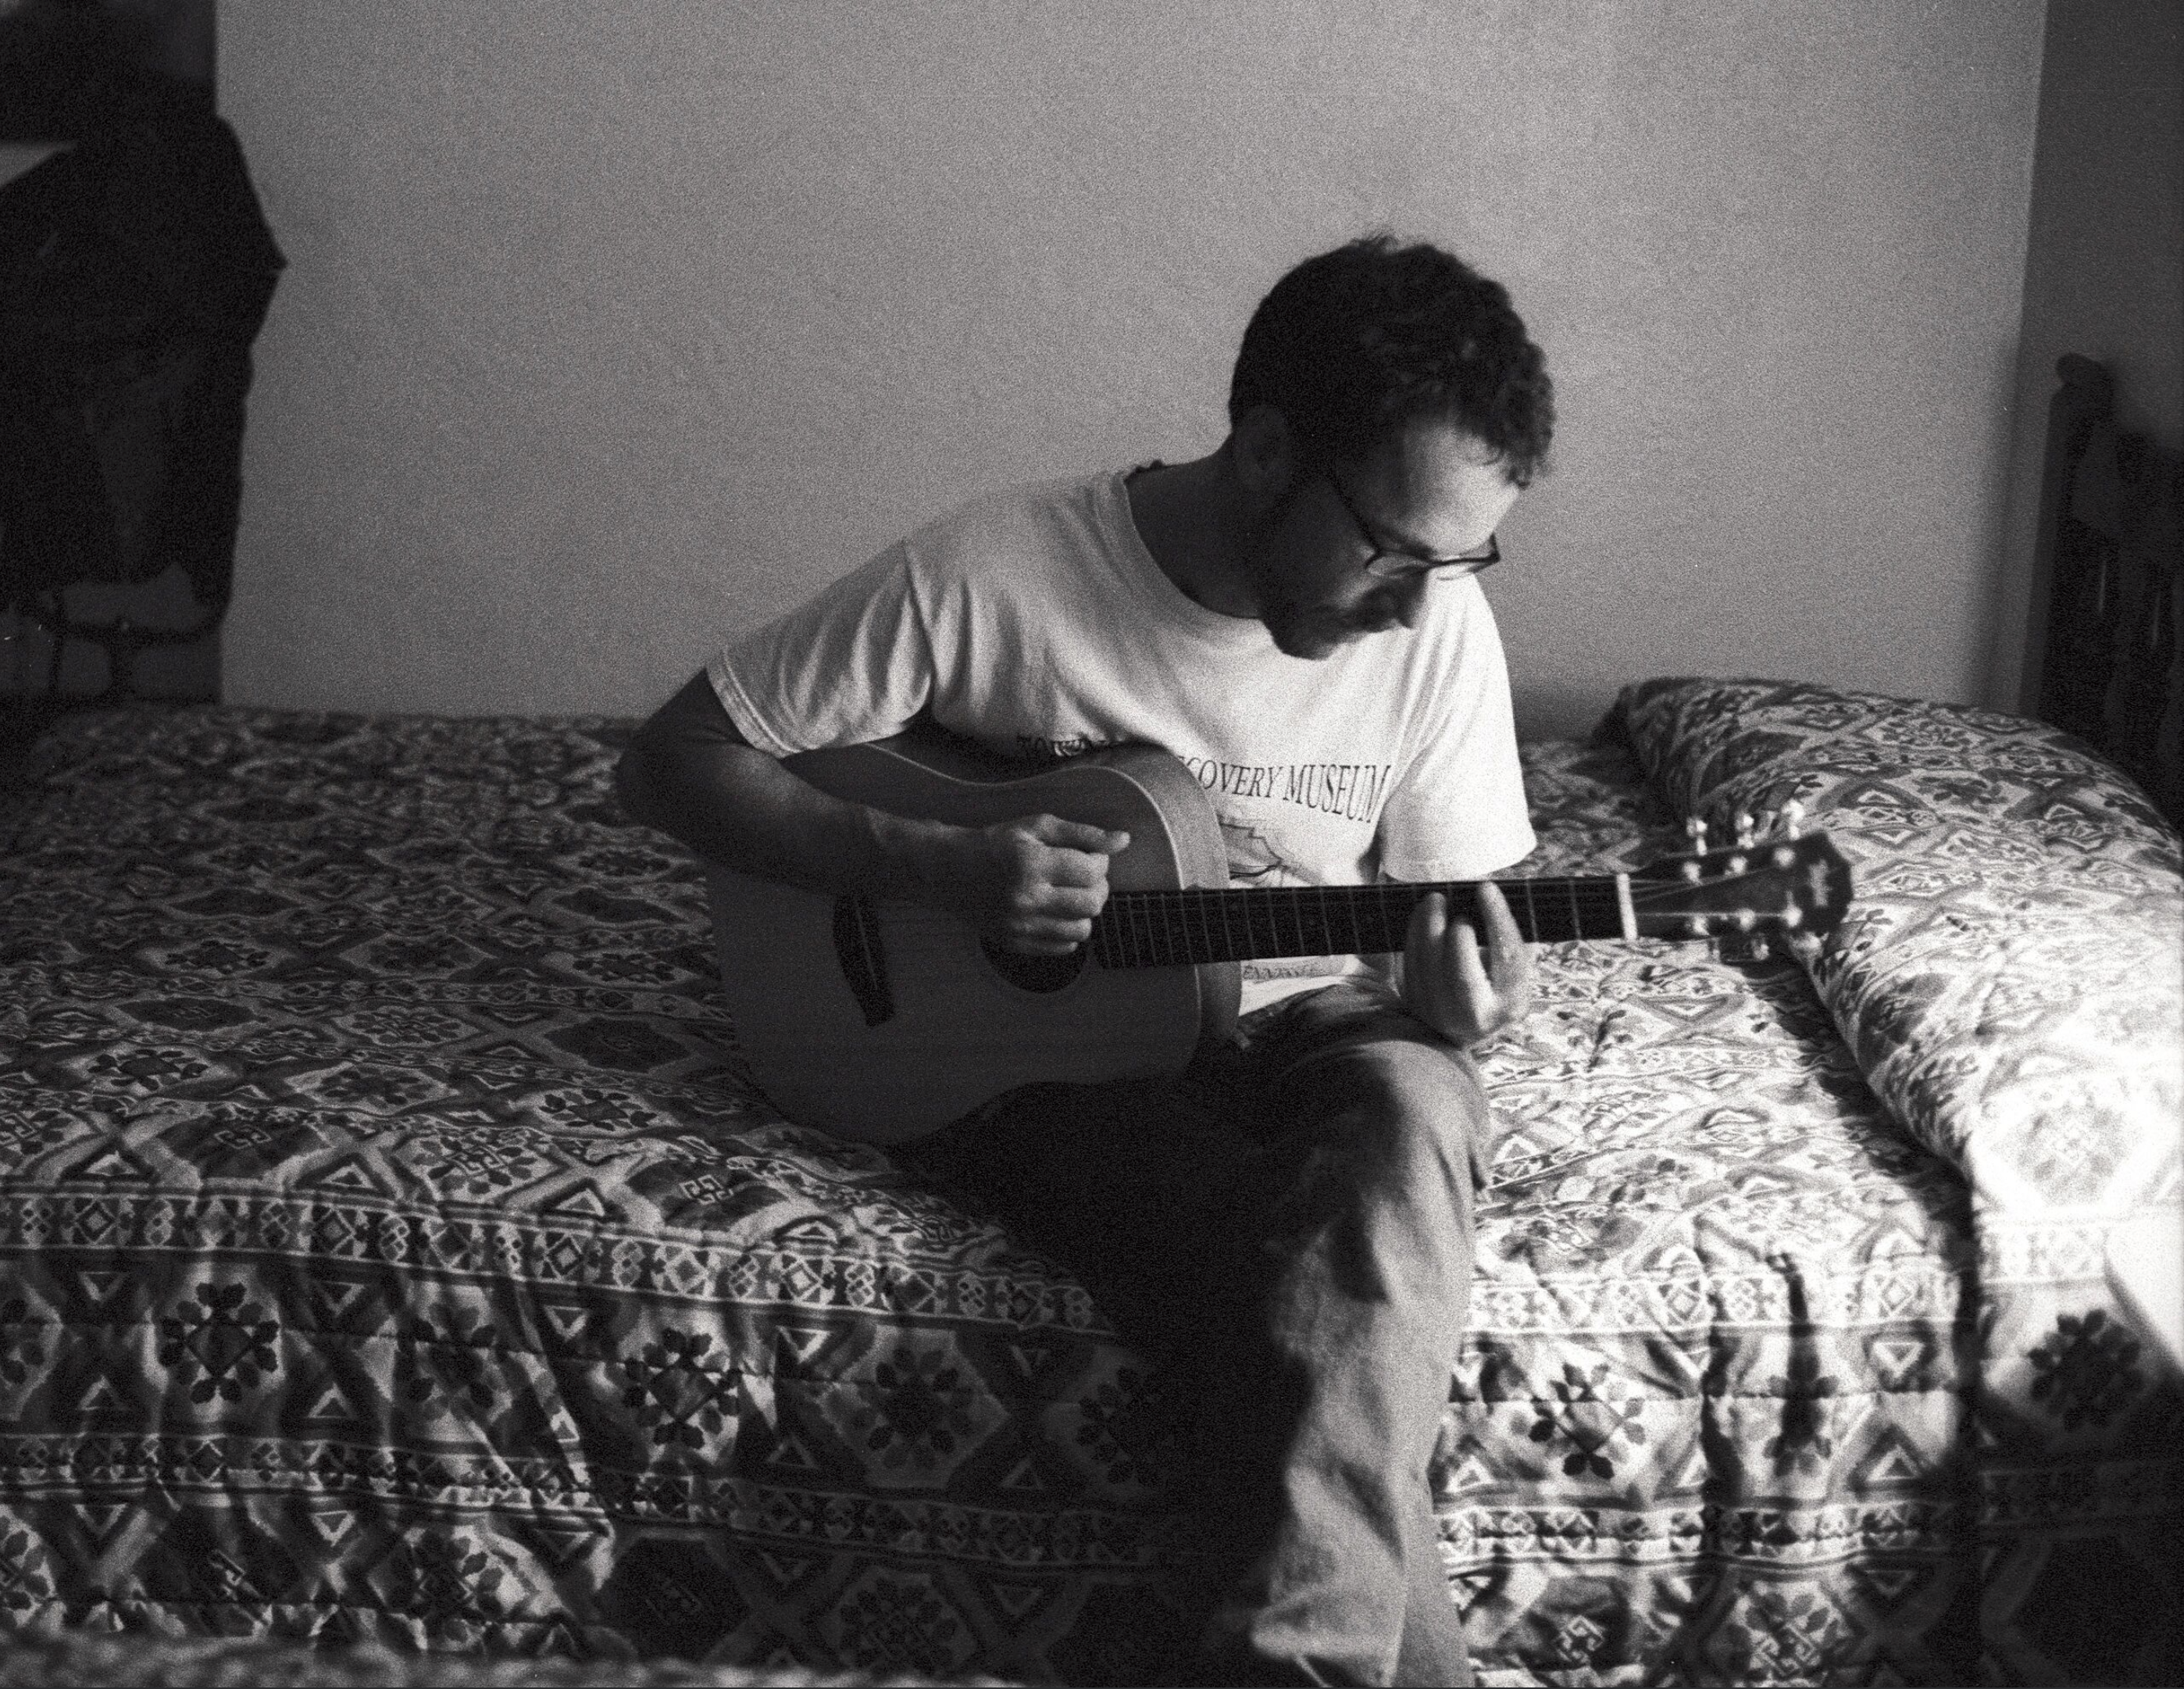 Ethan Coen during a break in filming, motel room Albuquerque, New Mexico, 2006